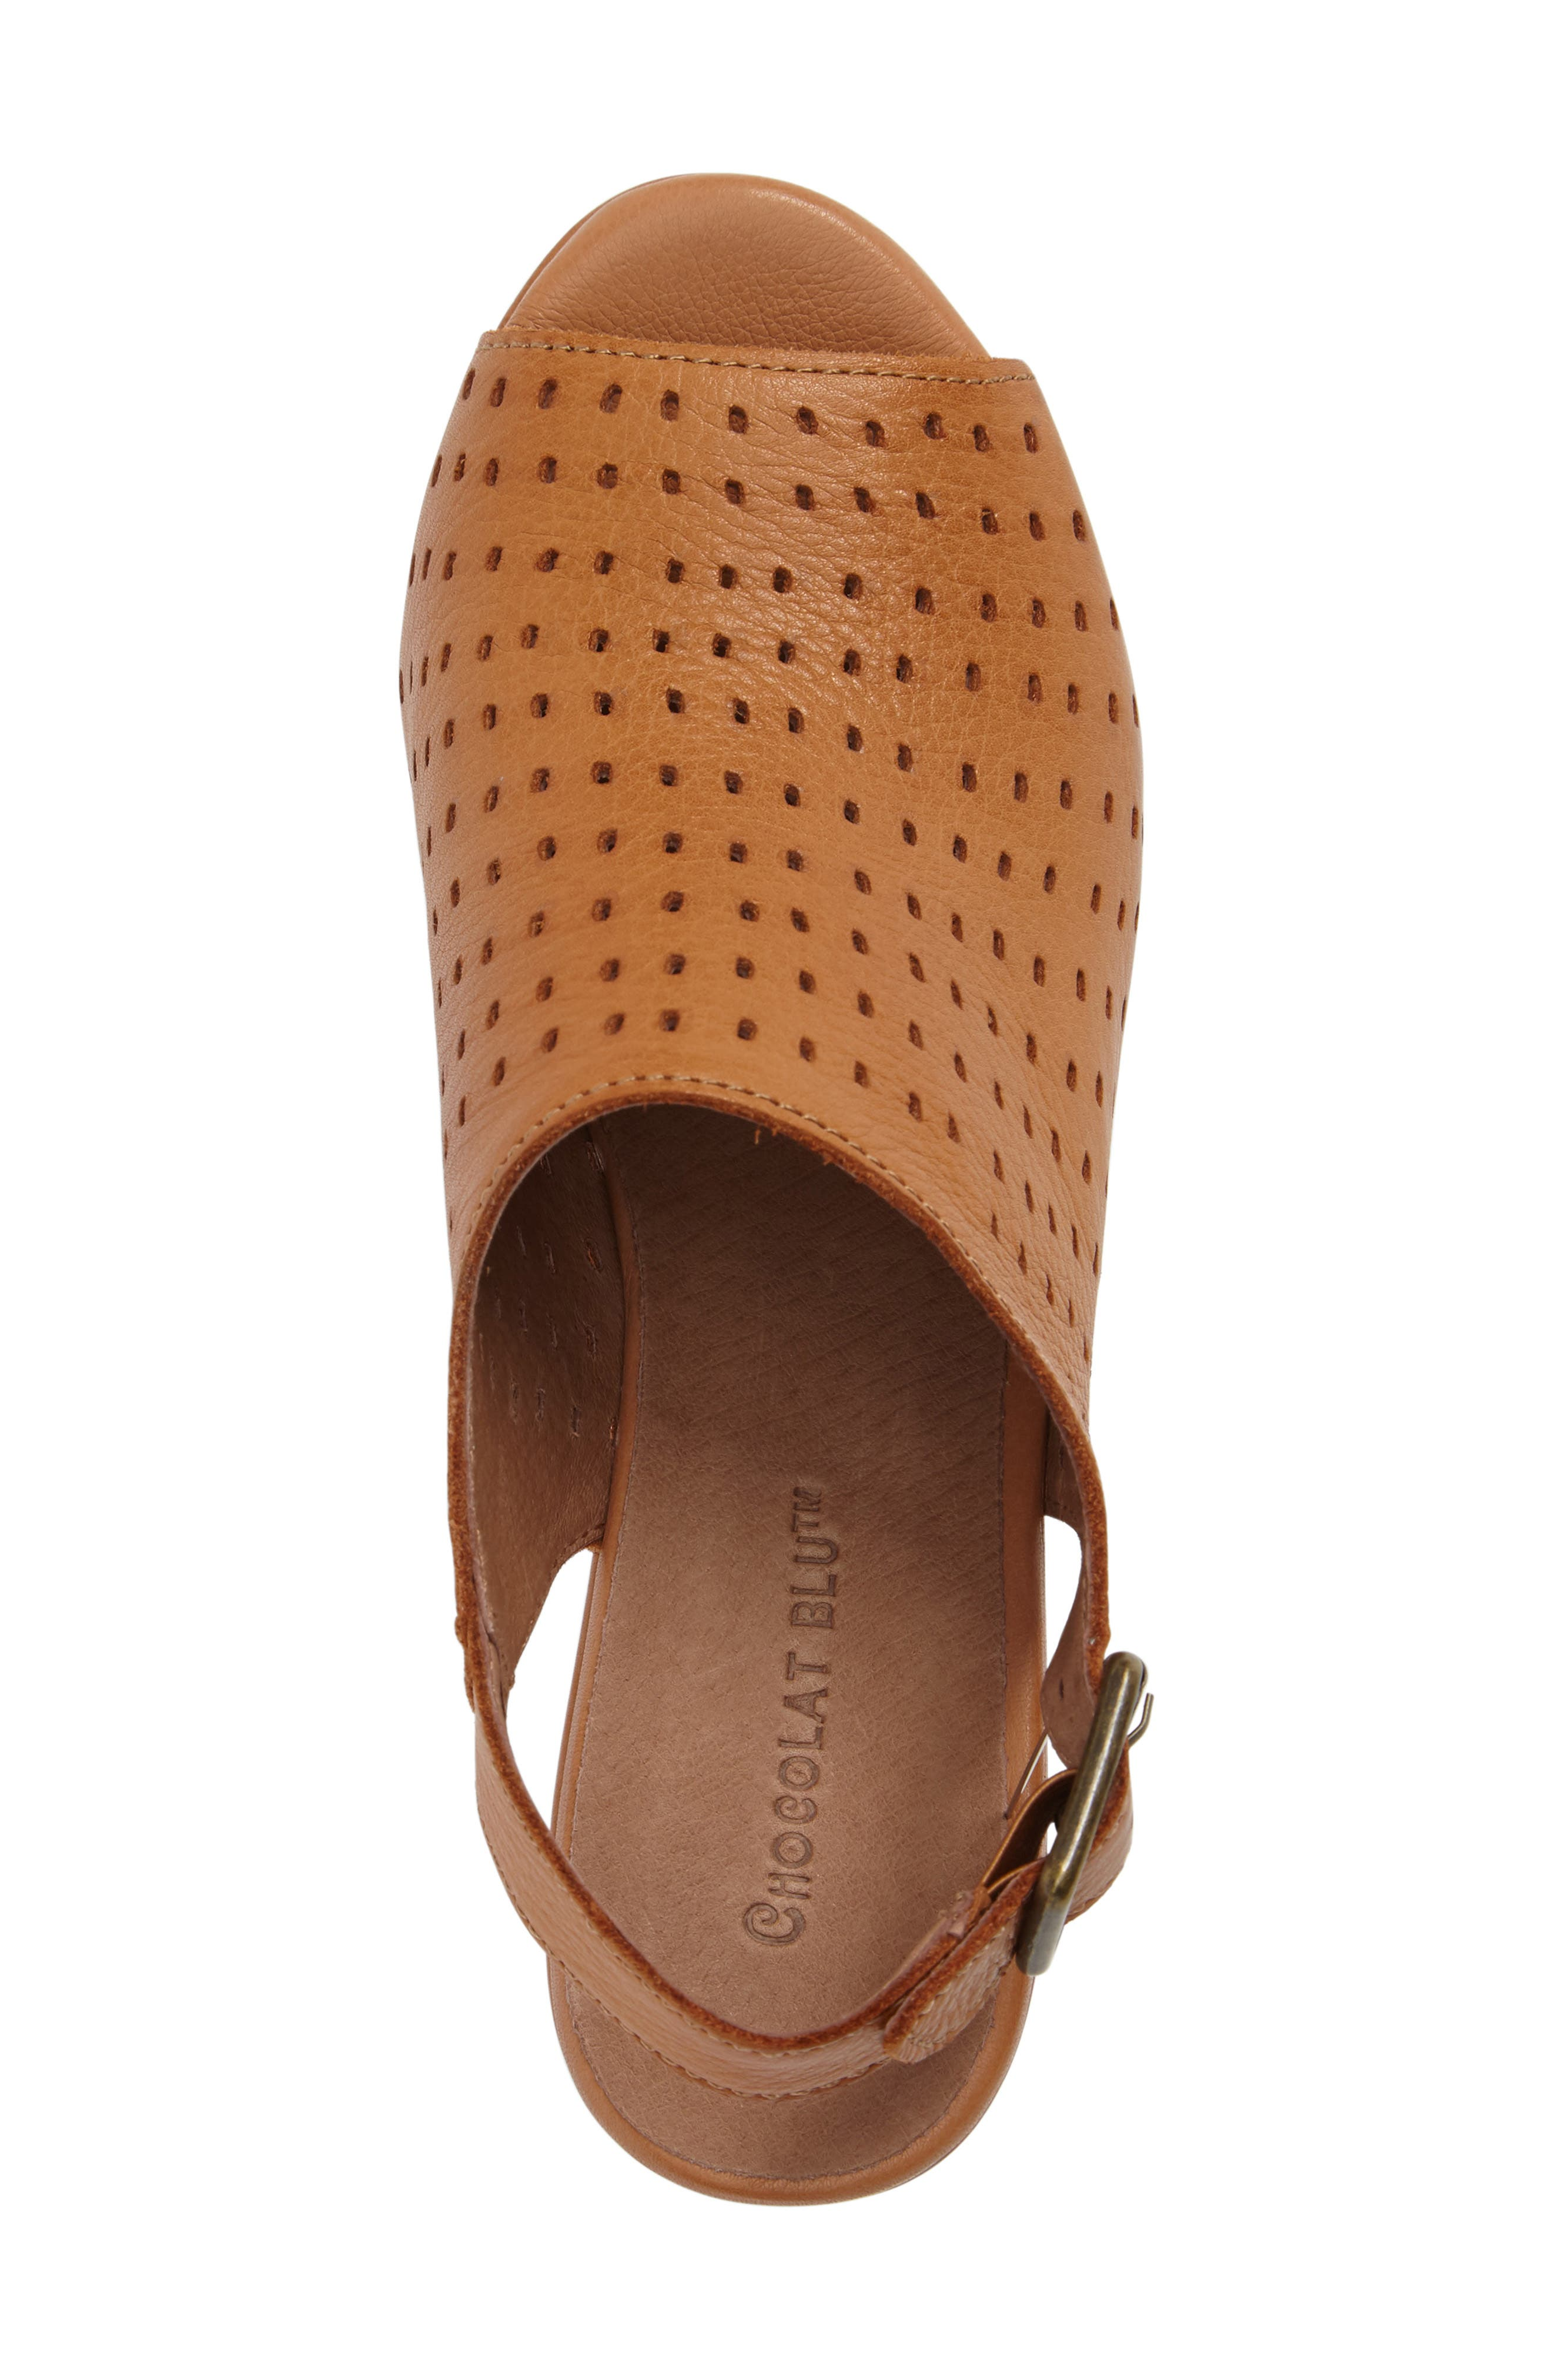 Wala Perforated Wedge Sandal,                             Alternate thumbnail 5, color,                             200